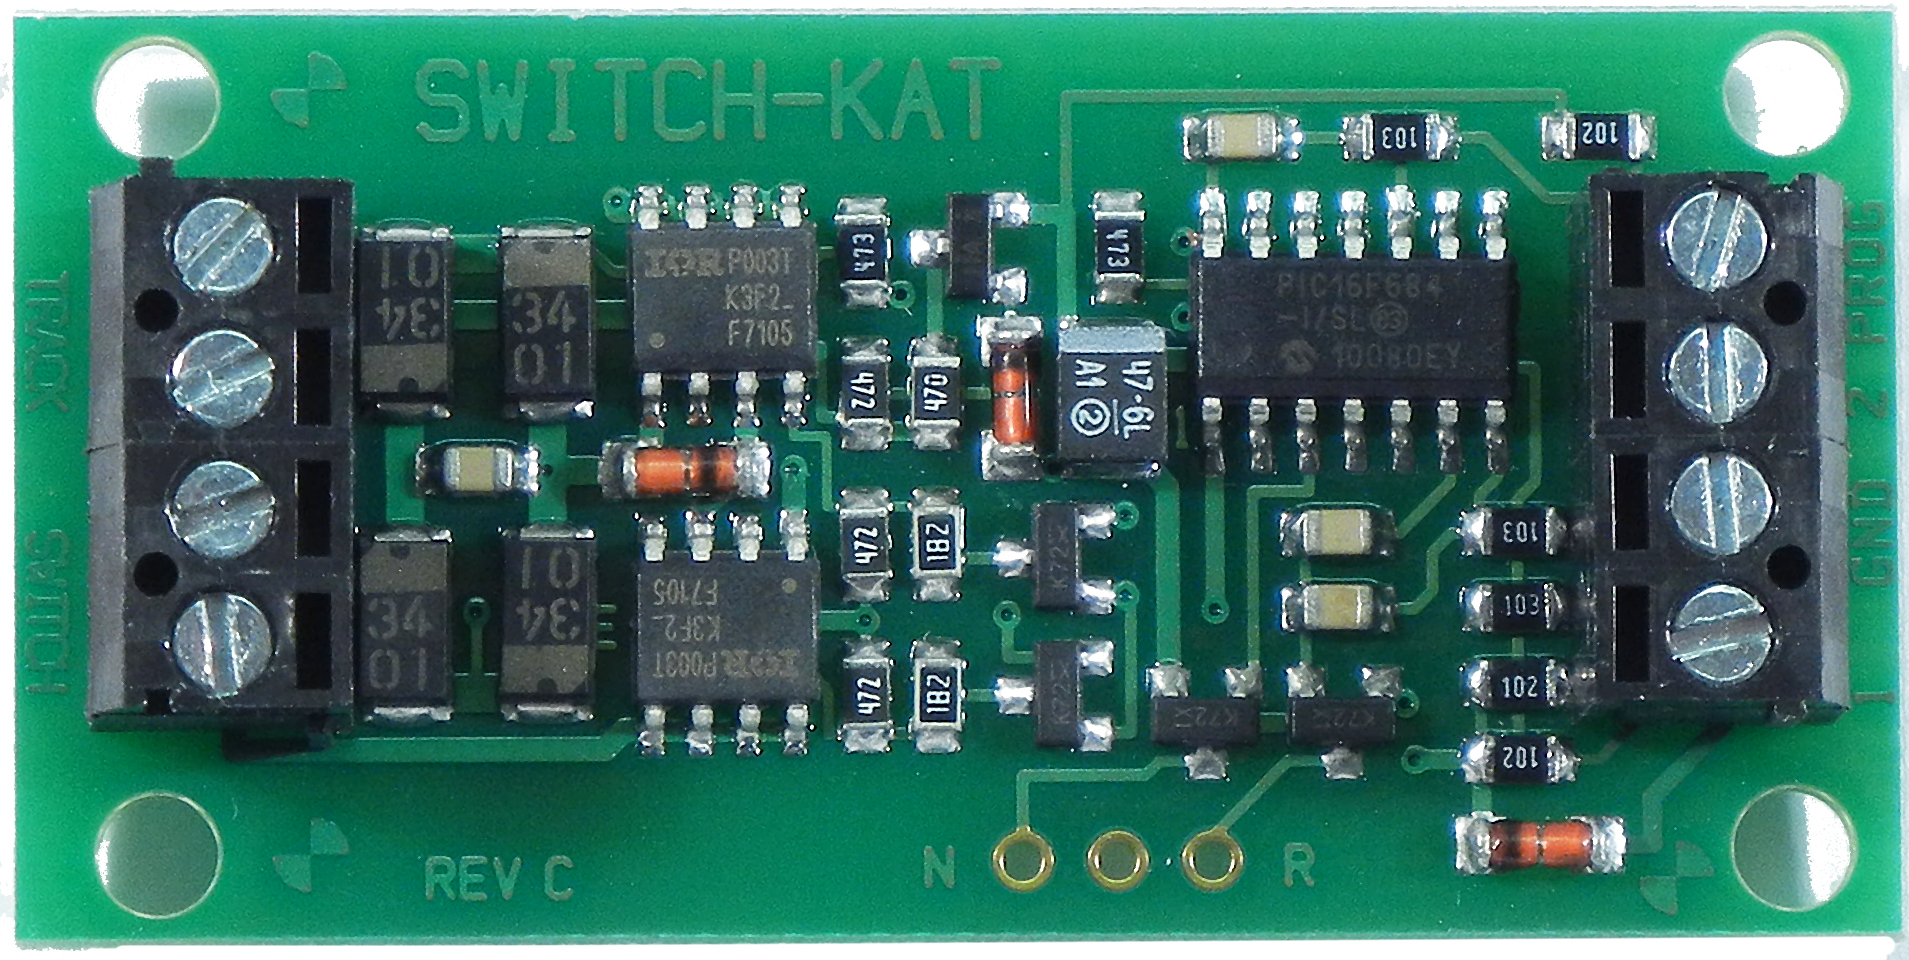 Switch-Kat for Kato, Lemaco or LGB remote control turnouts